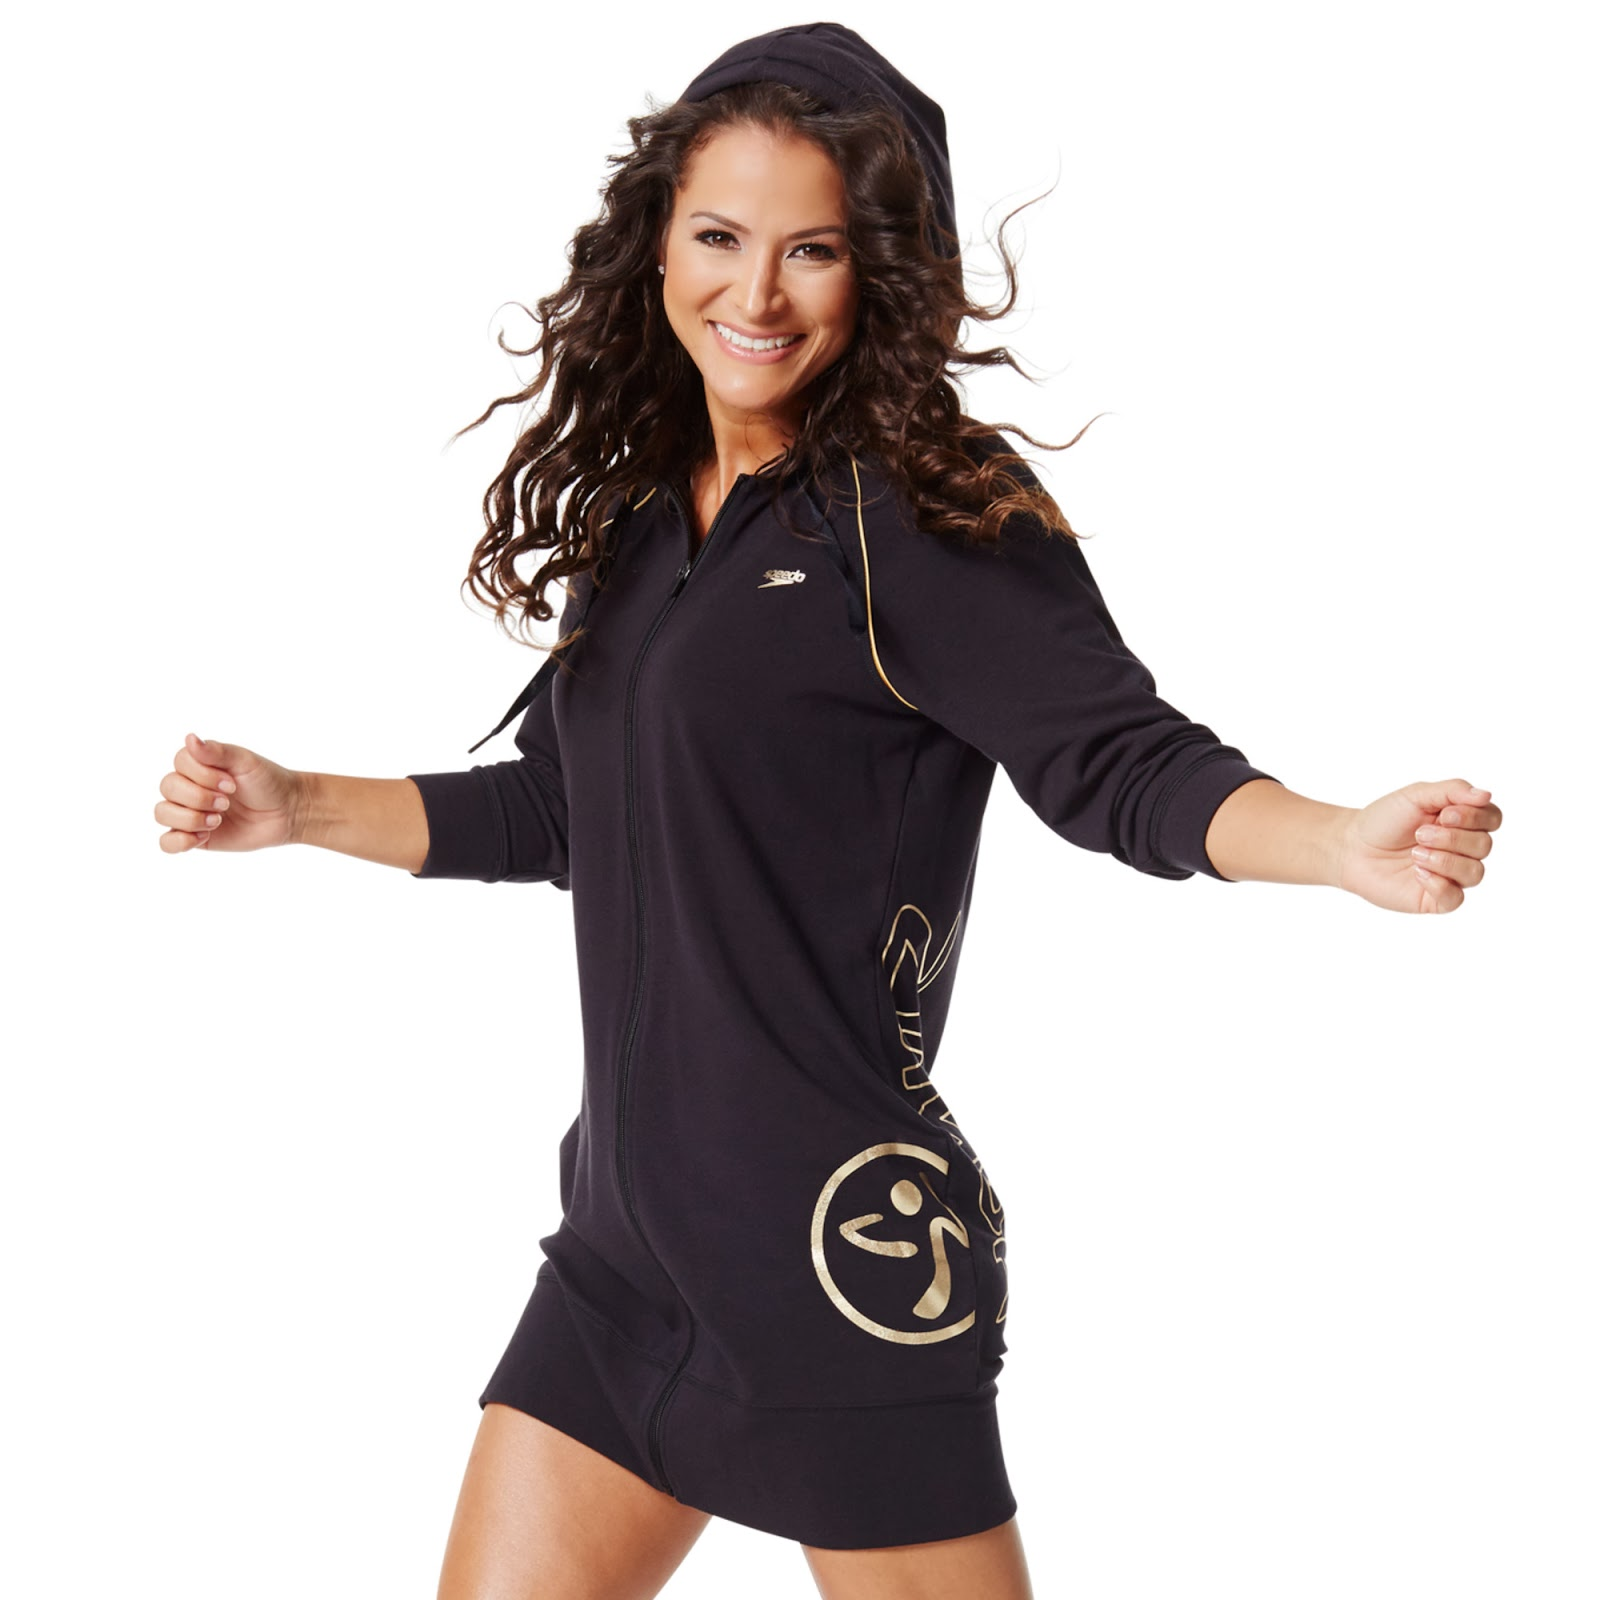 http://www.zumba.com/en-US/store-zin/US/product/foil-me-once-cover-up-hoodie?color=Black